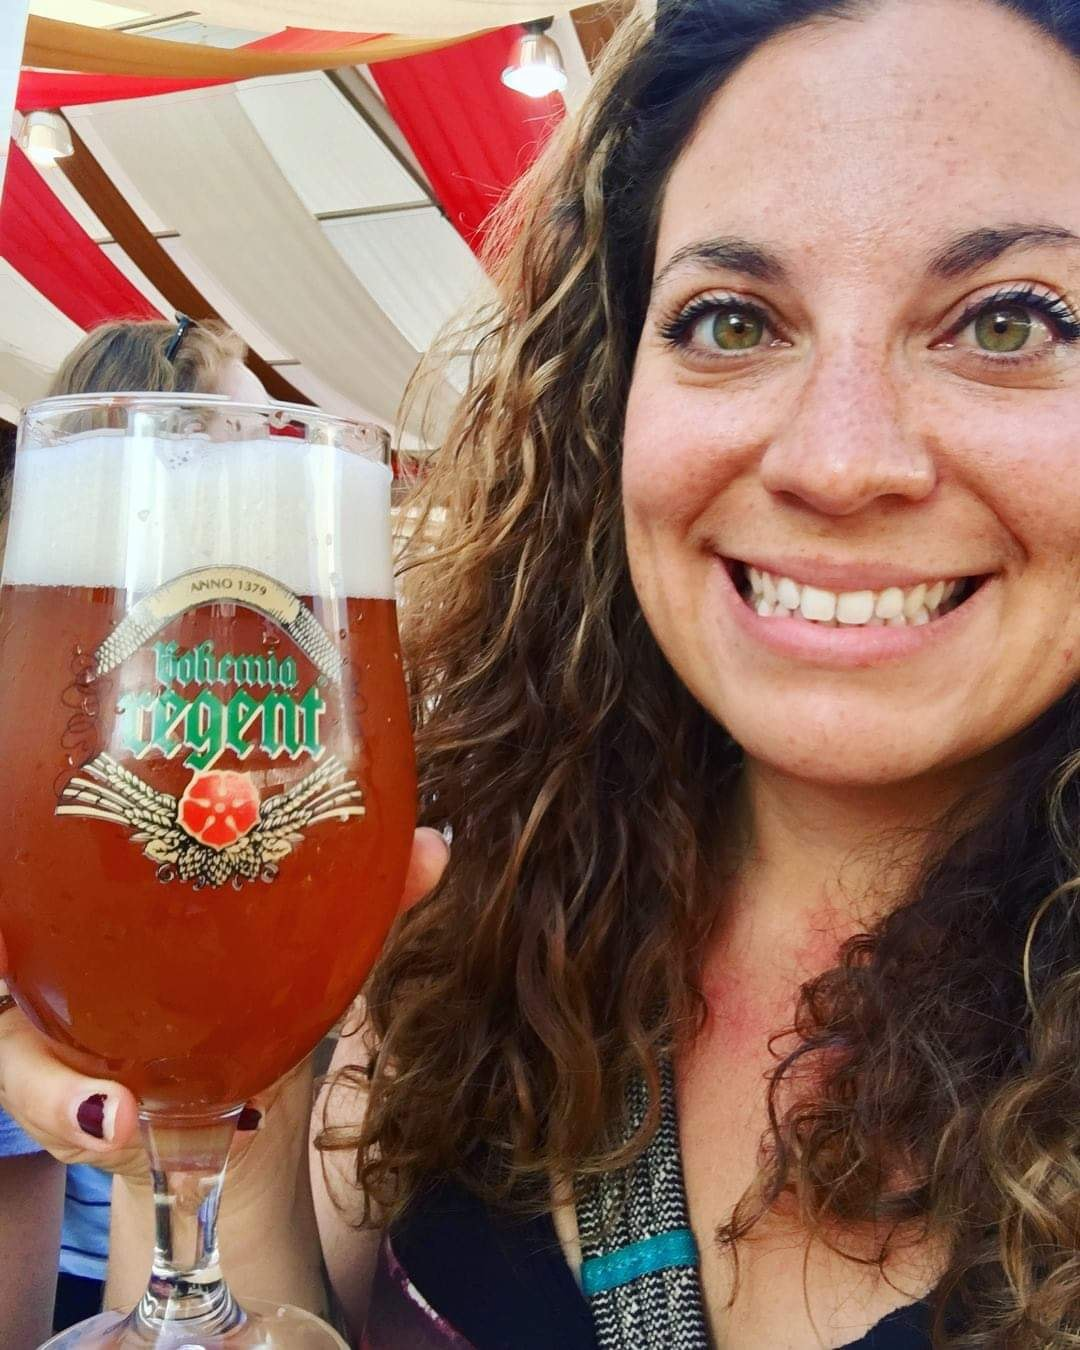 Before moving to CB, Nia worked at a brewery, developing a taste for fermented beverages.